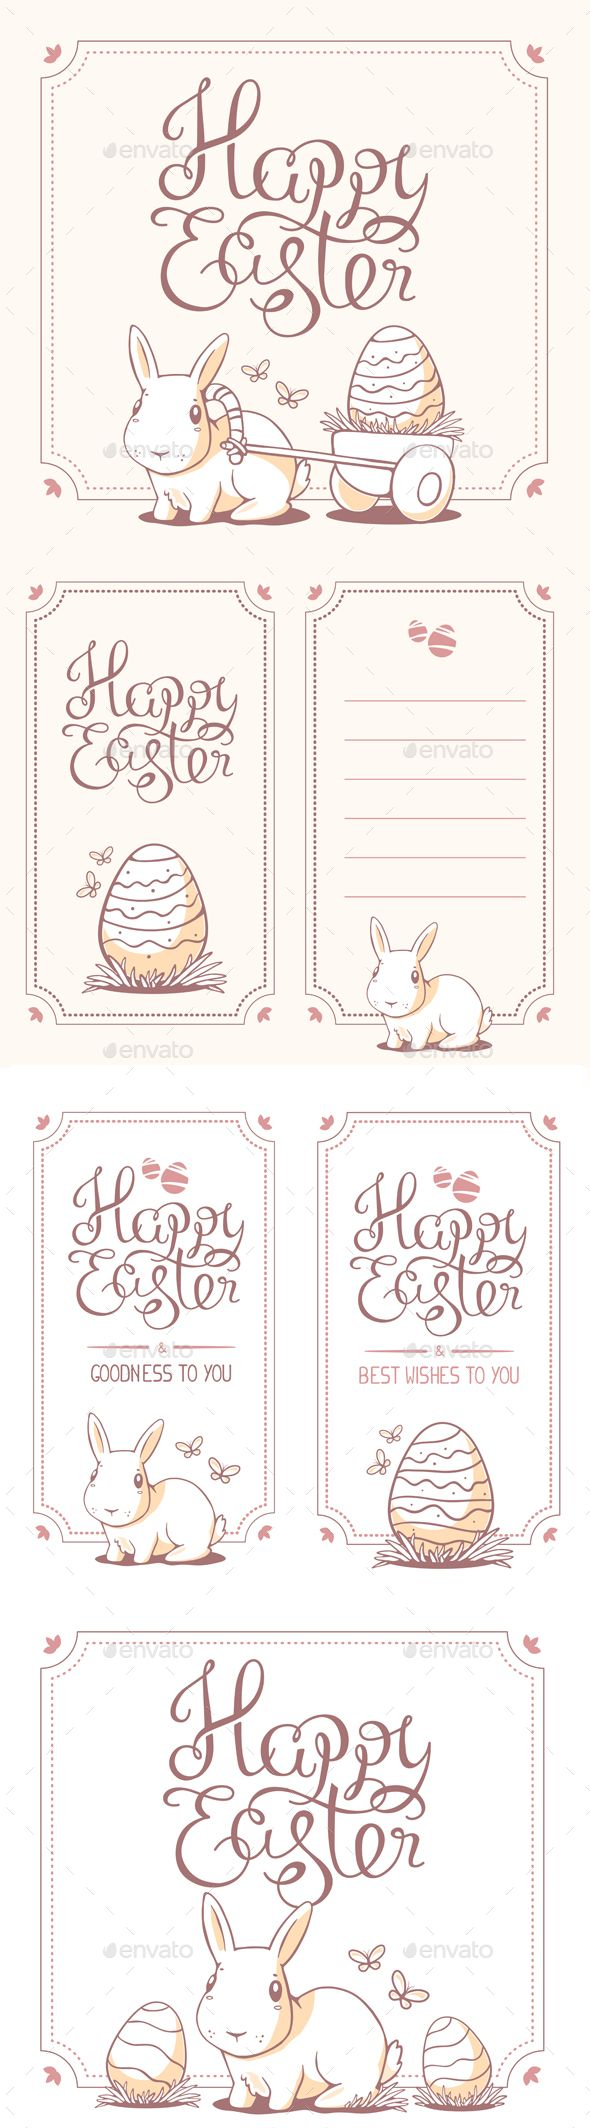 Collection of Happy Easter Greeting Cards